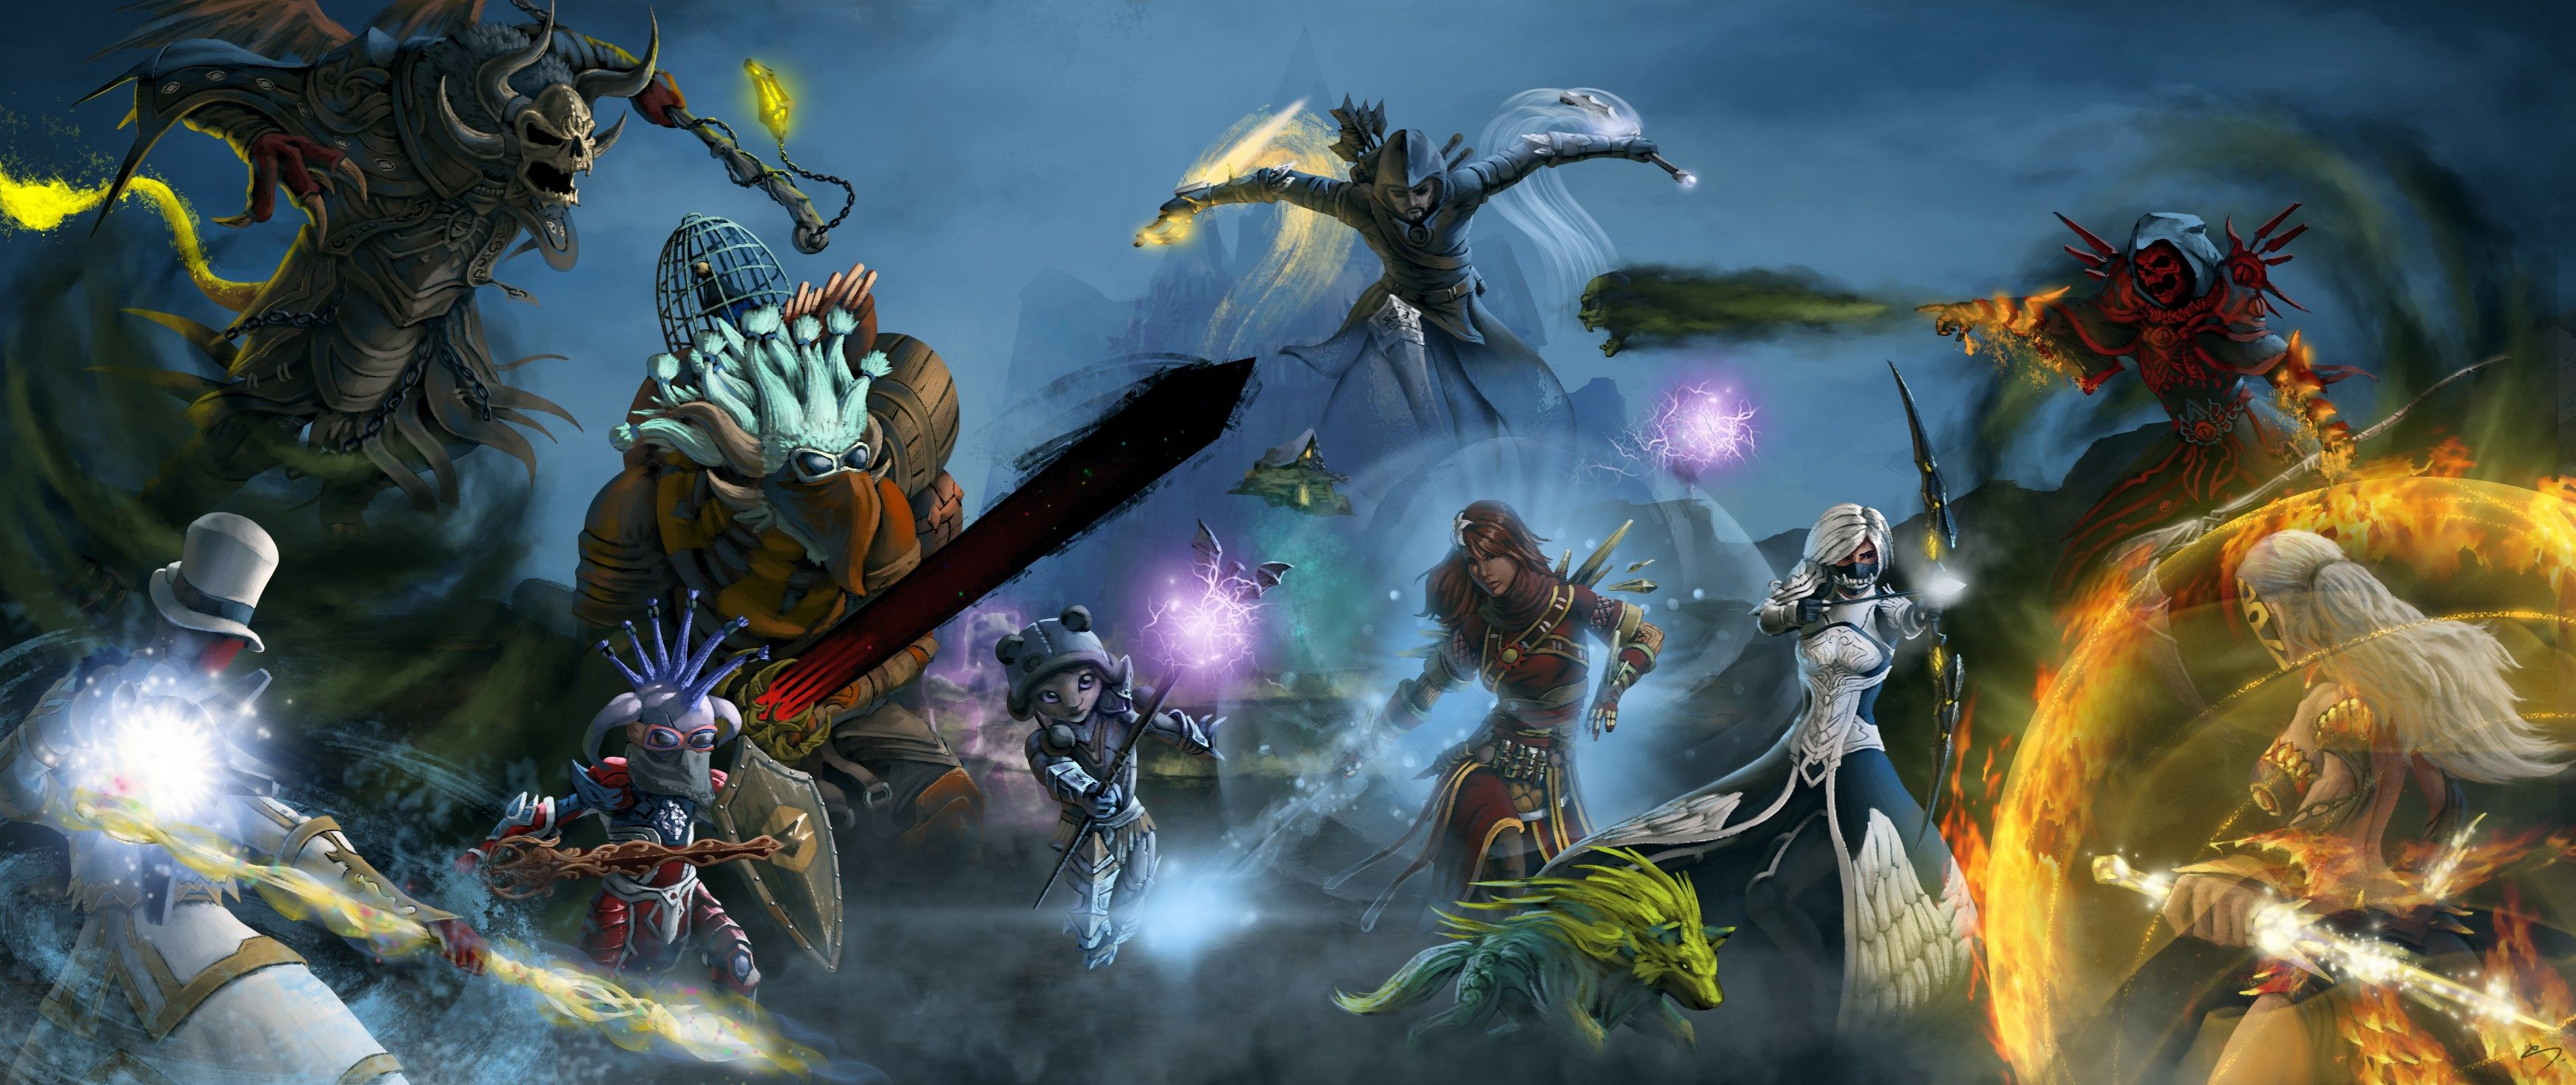 3503x1475 Px Free Desktop Wallpaper Downloads Guild Wars 2 By